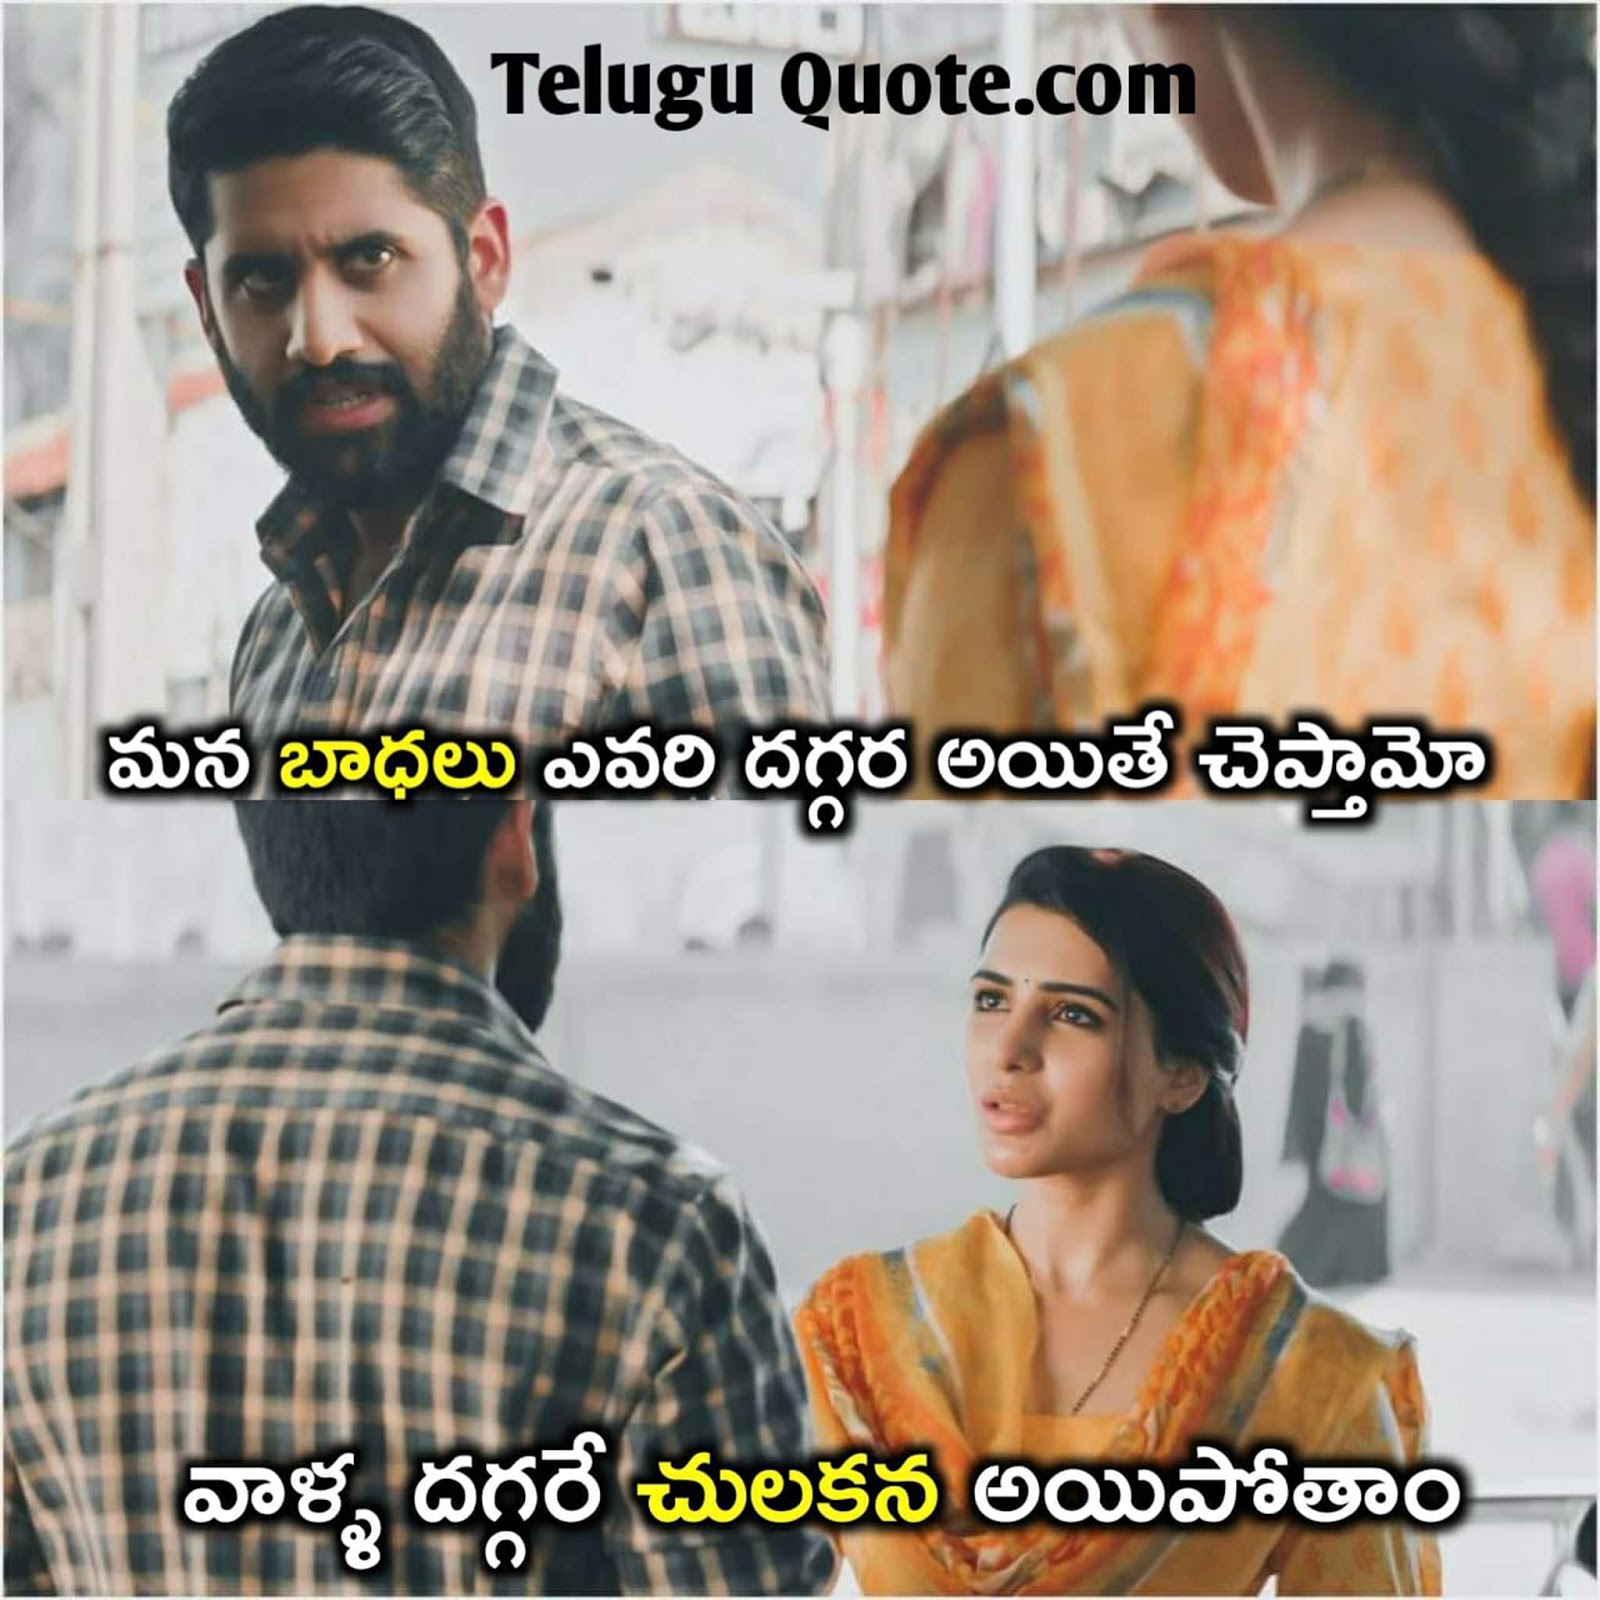 Telugu Deep Love Quotes